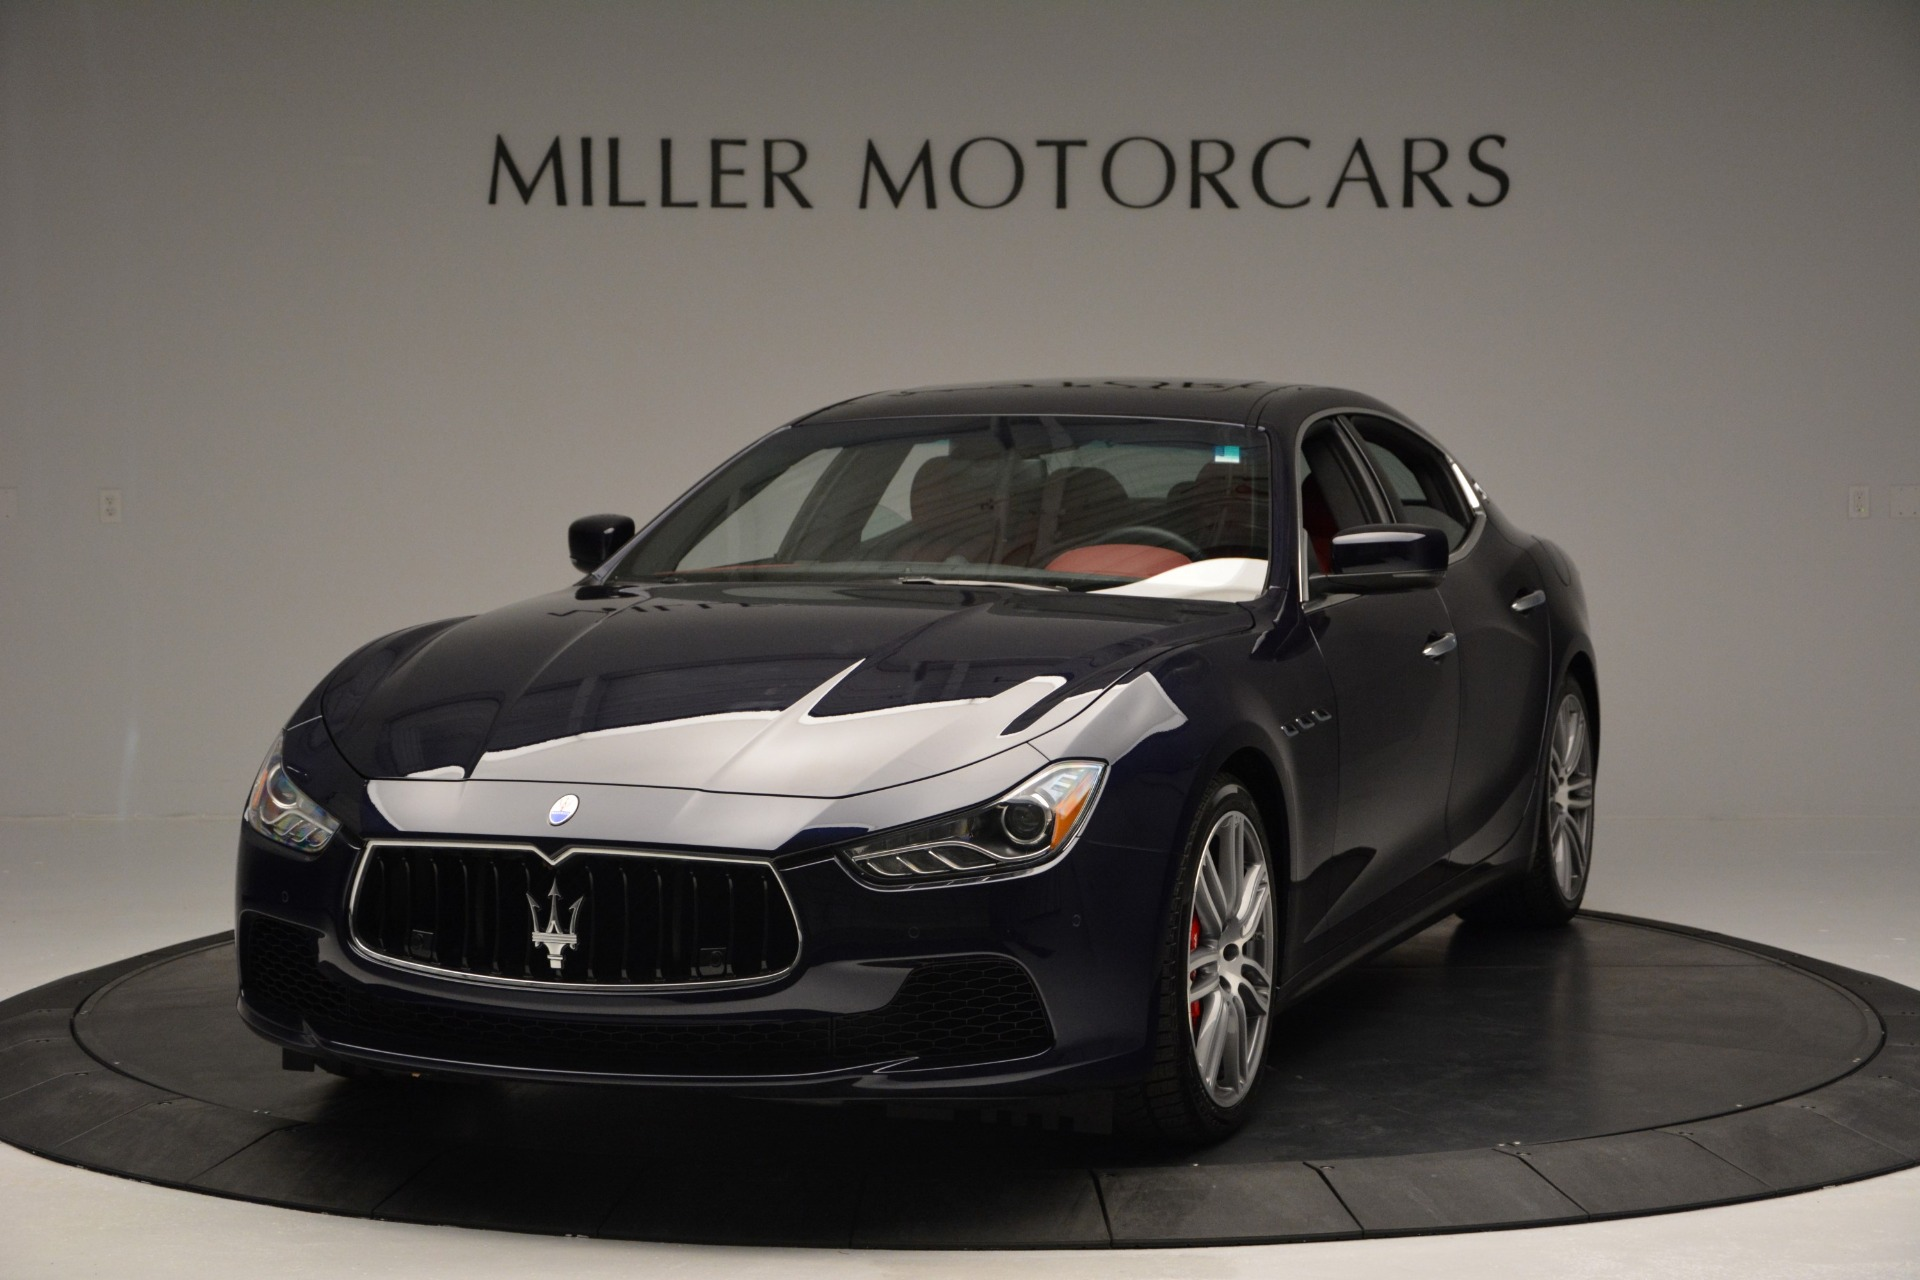 New 2017 Maserati Ghibli S Q4 For Sale In Greenwich, CT 849_main